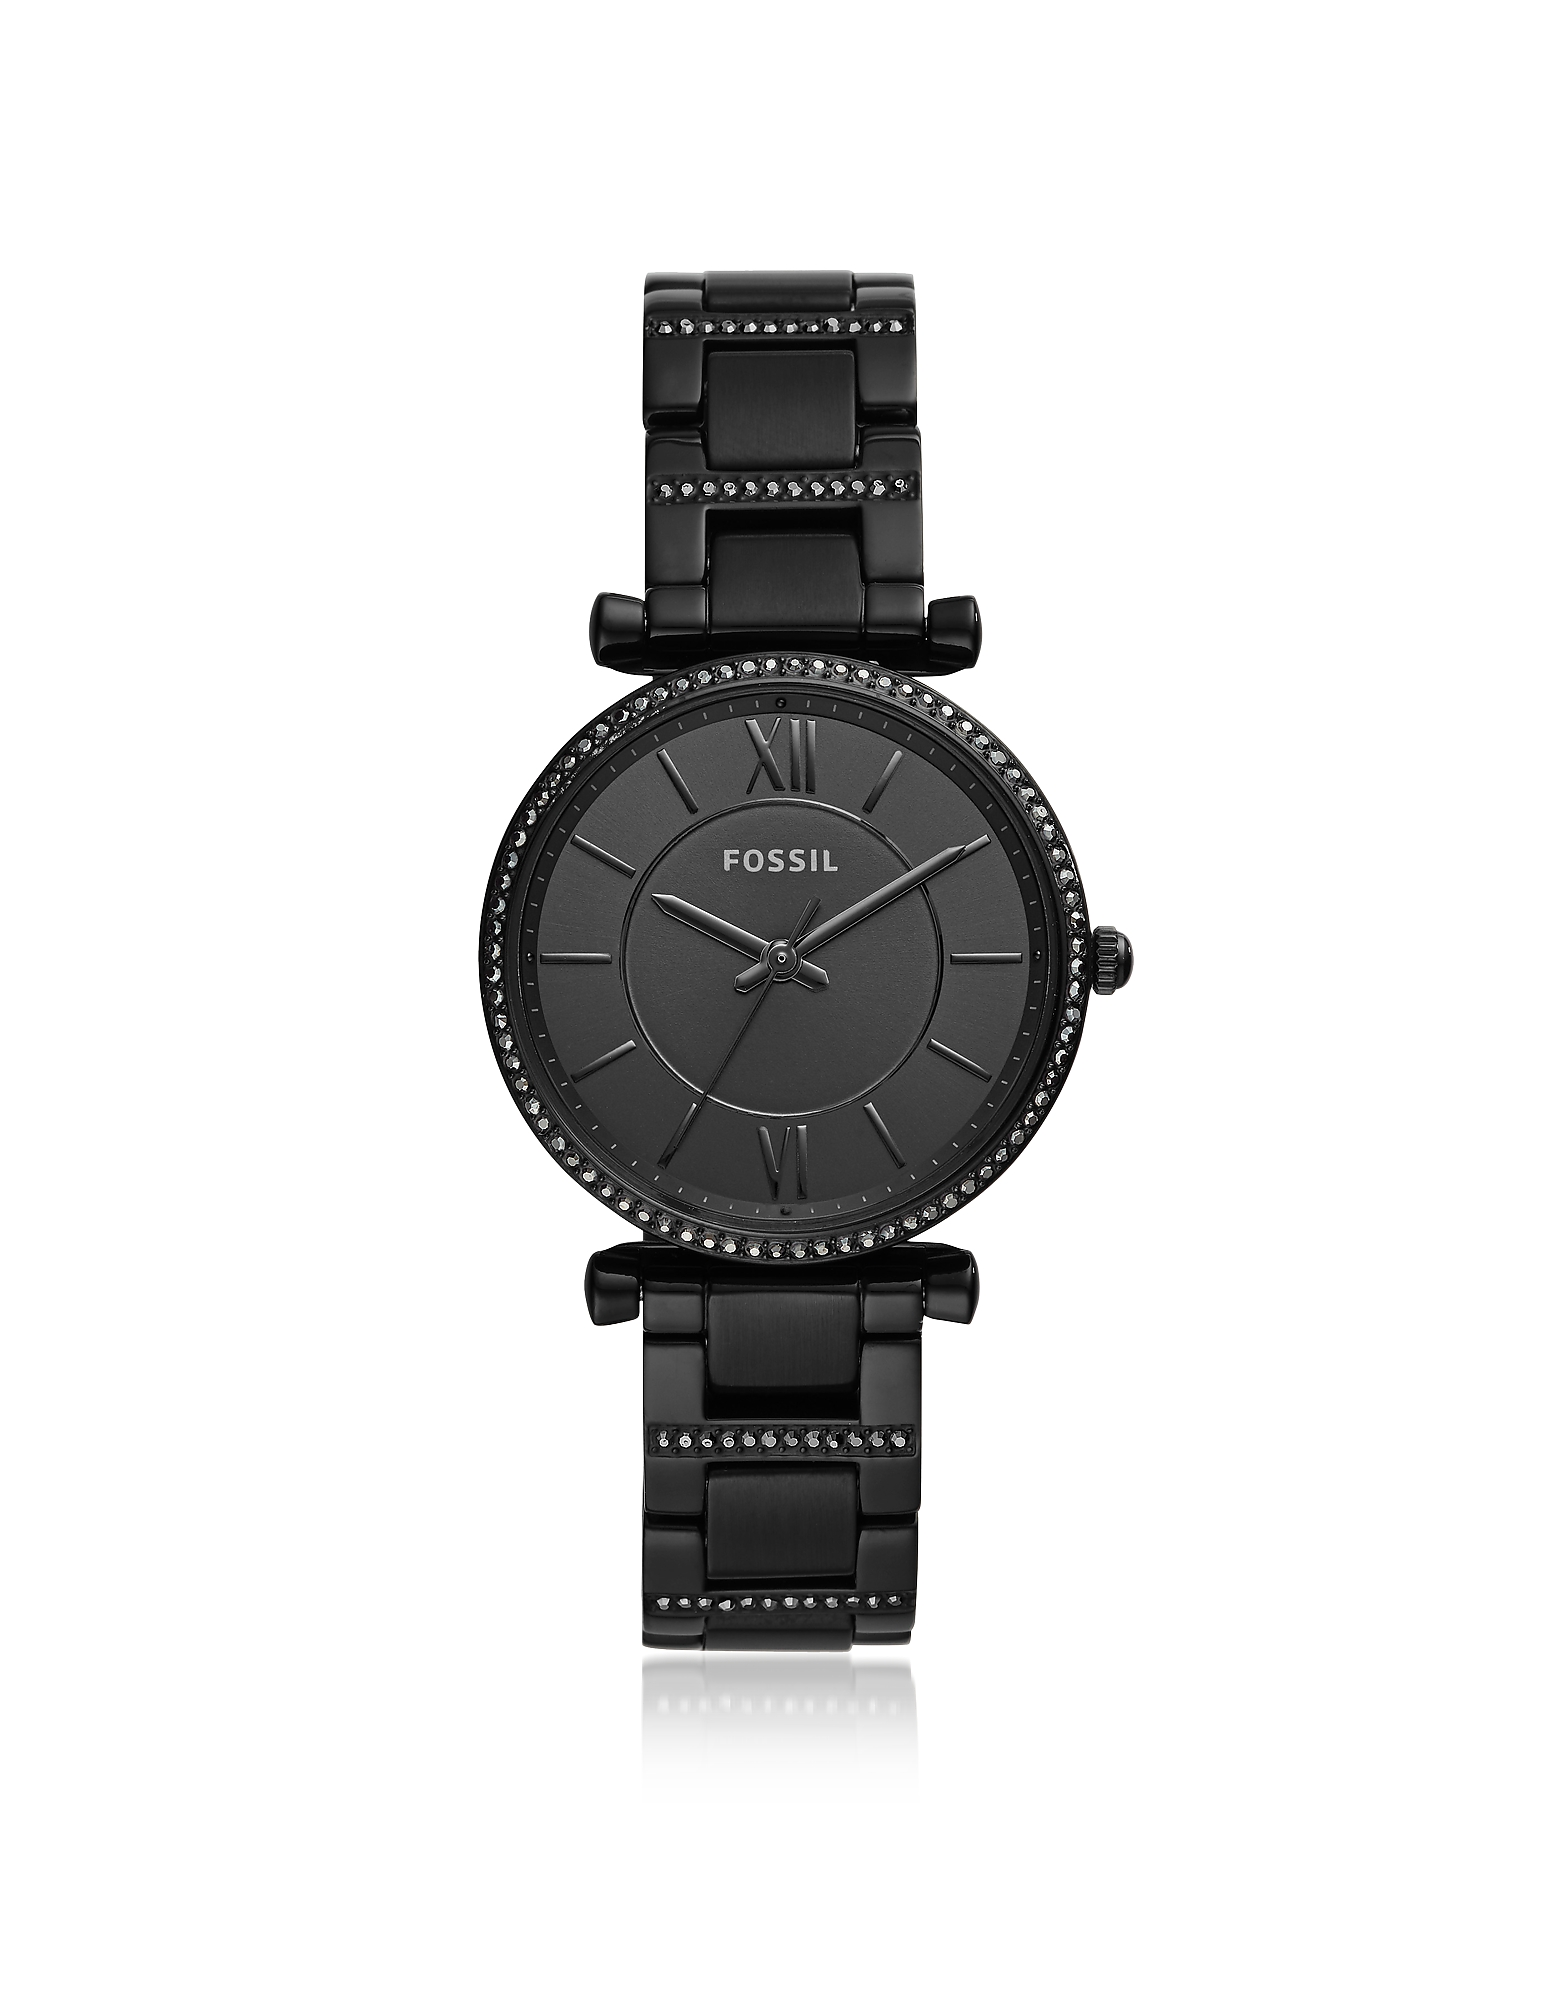 Fossil  Women's Watches Carlie Three-Hand Black Stainless Steel Watch